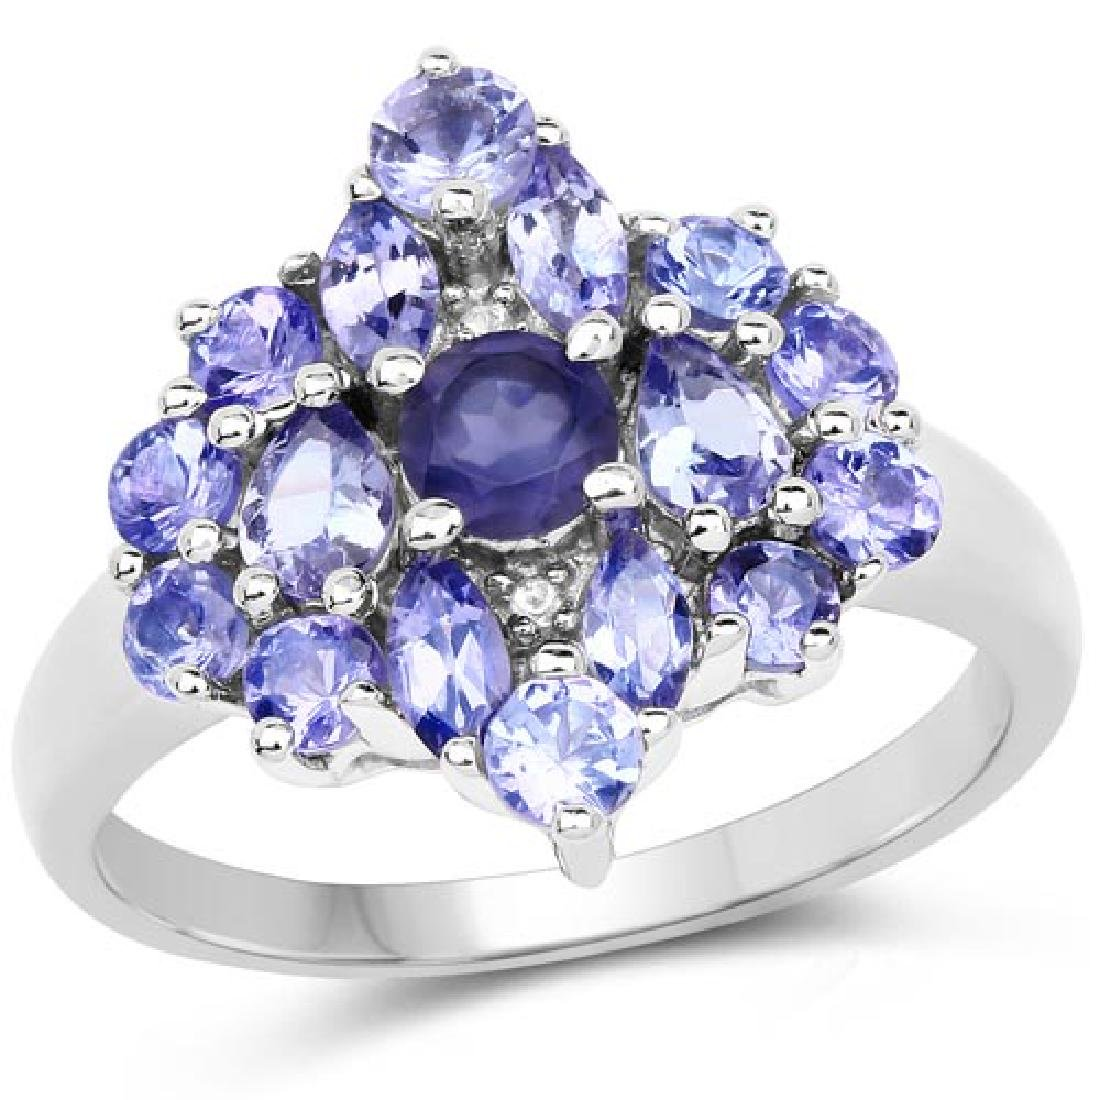 1.59 Carat Genuine Iolite Tanzanite and White Topaz .9